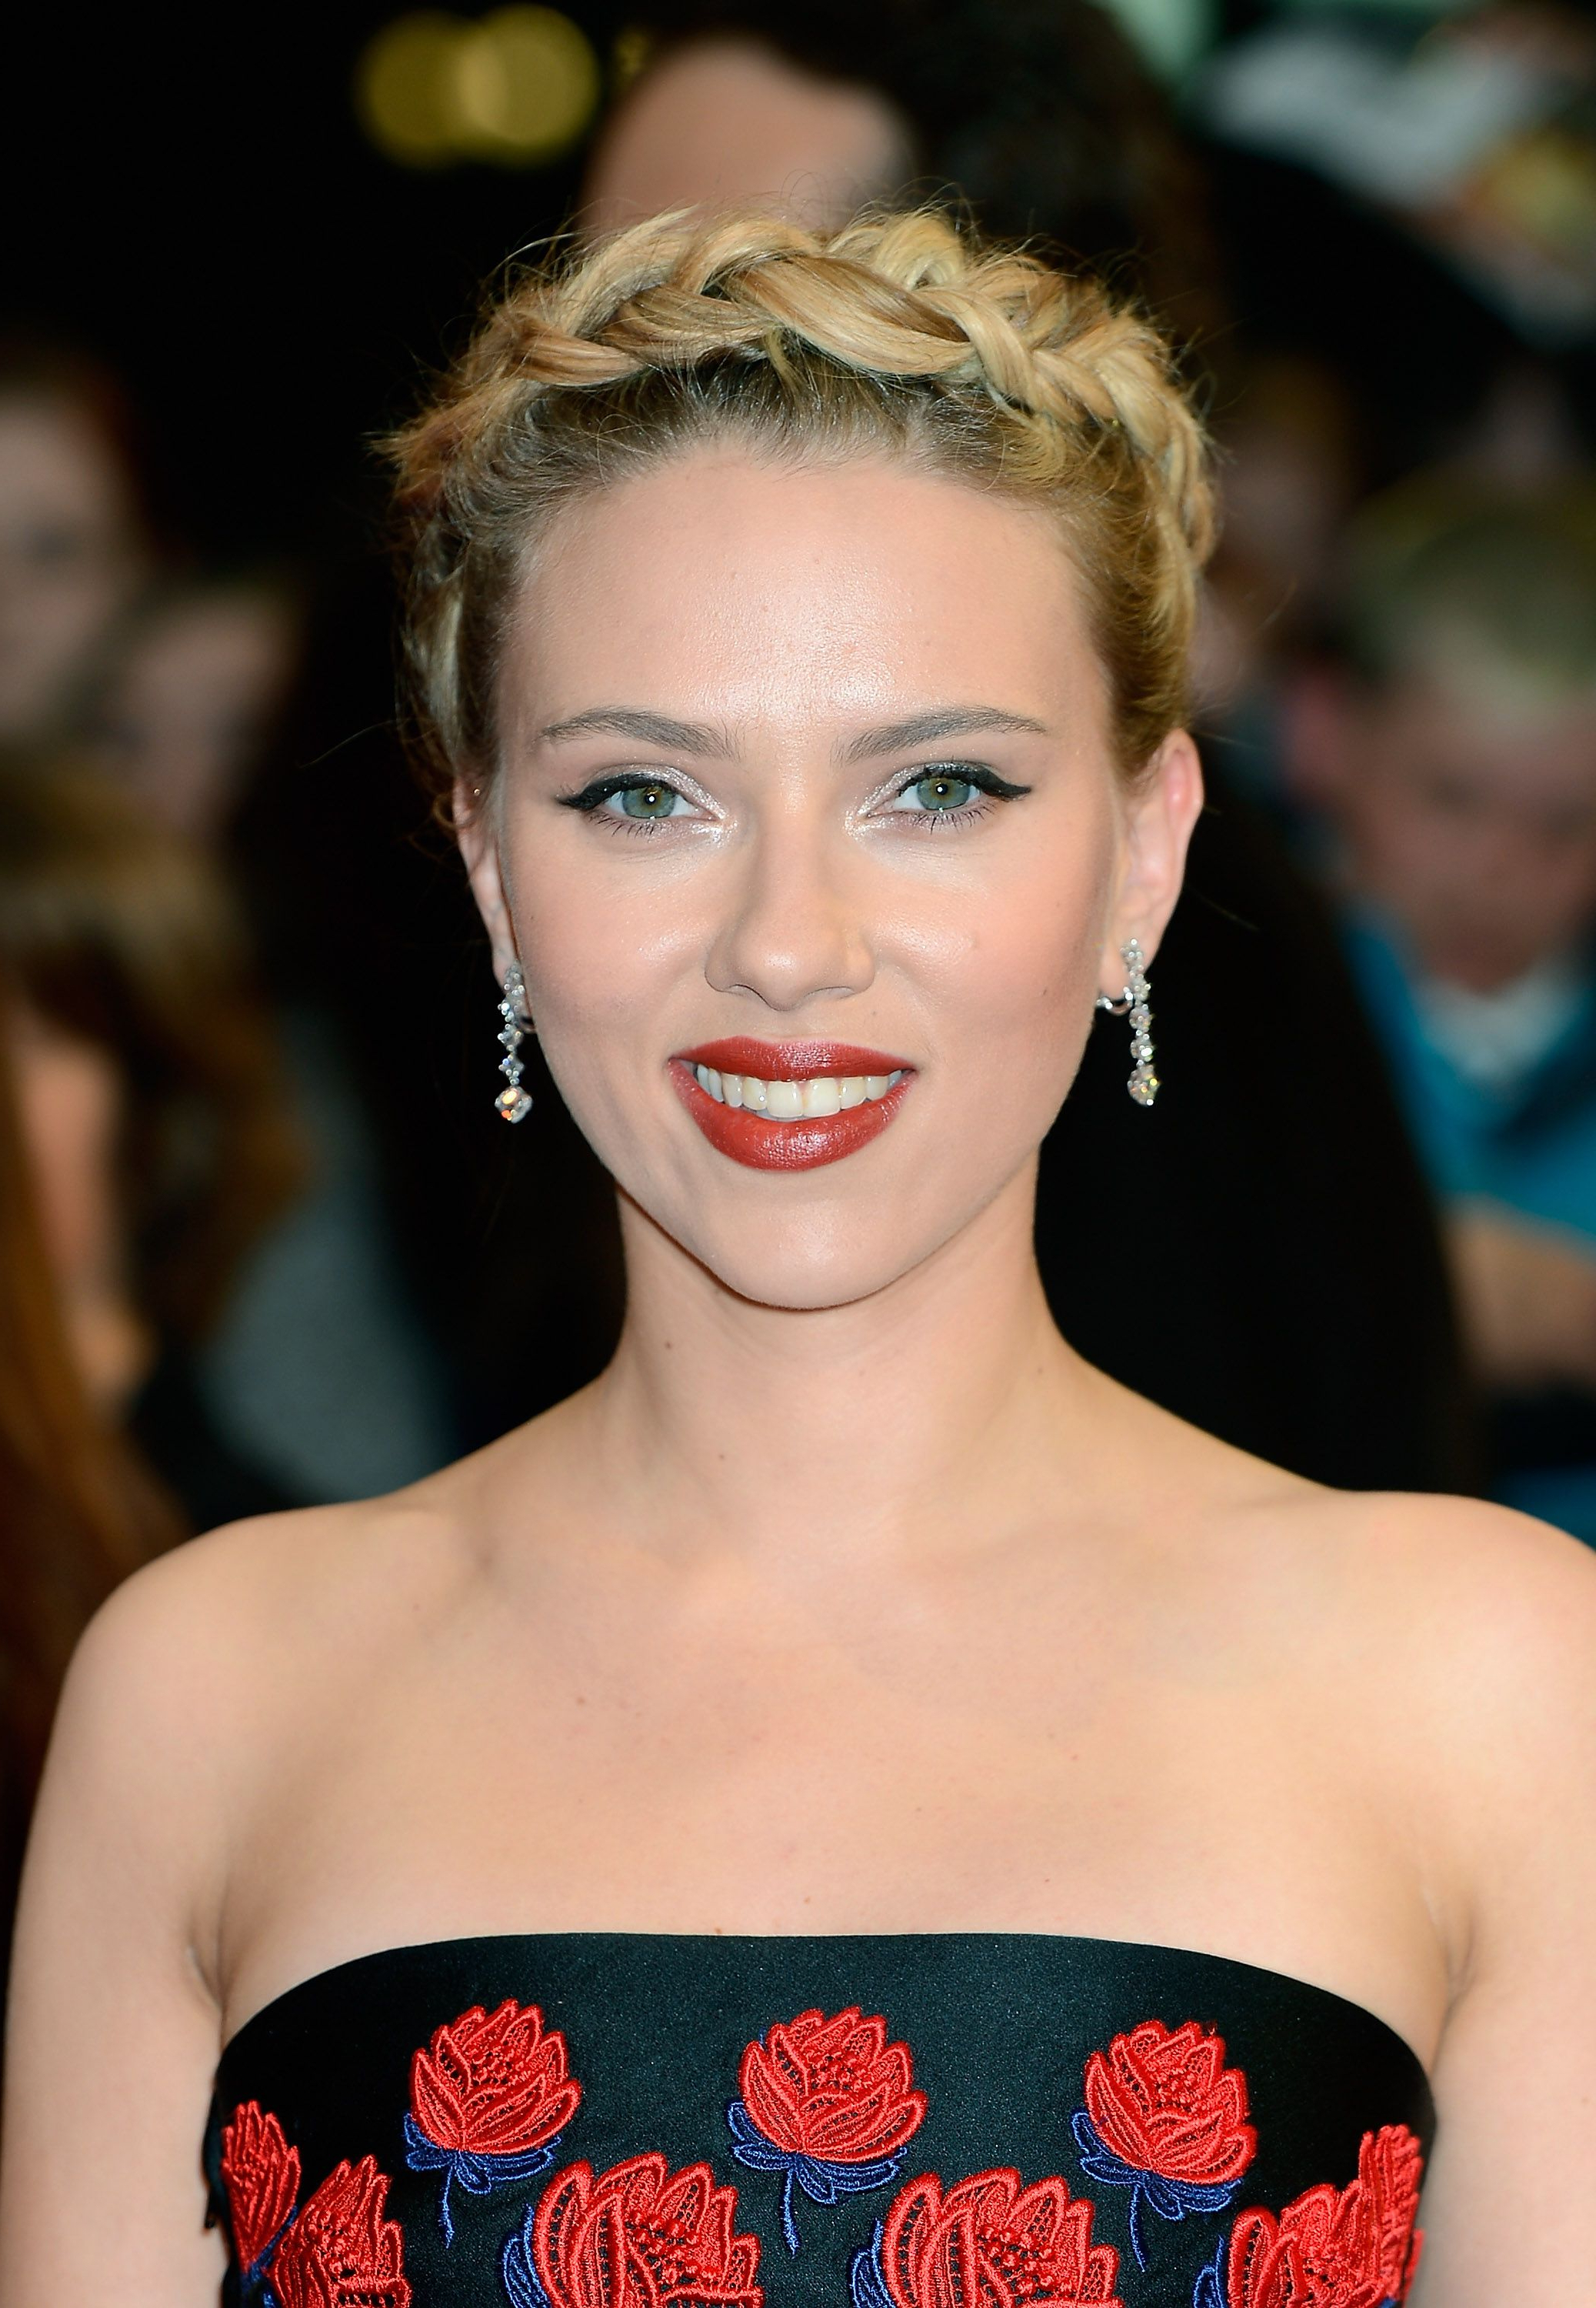 Medium Hairstyles For Women: 23 Mid Length Haircuts To Try In 2018 With Regard To Favorite Scarlett Johansson Medium Haircuts (View 14 of 20)